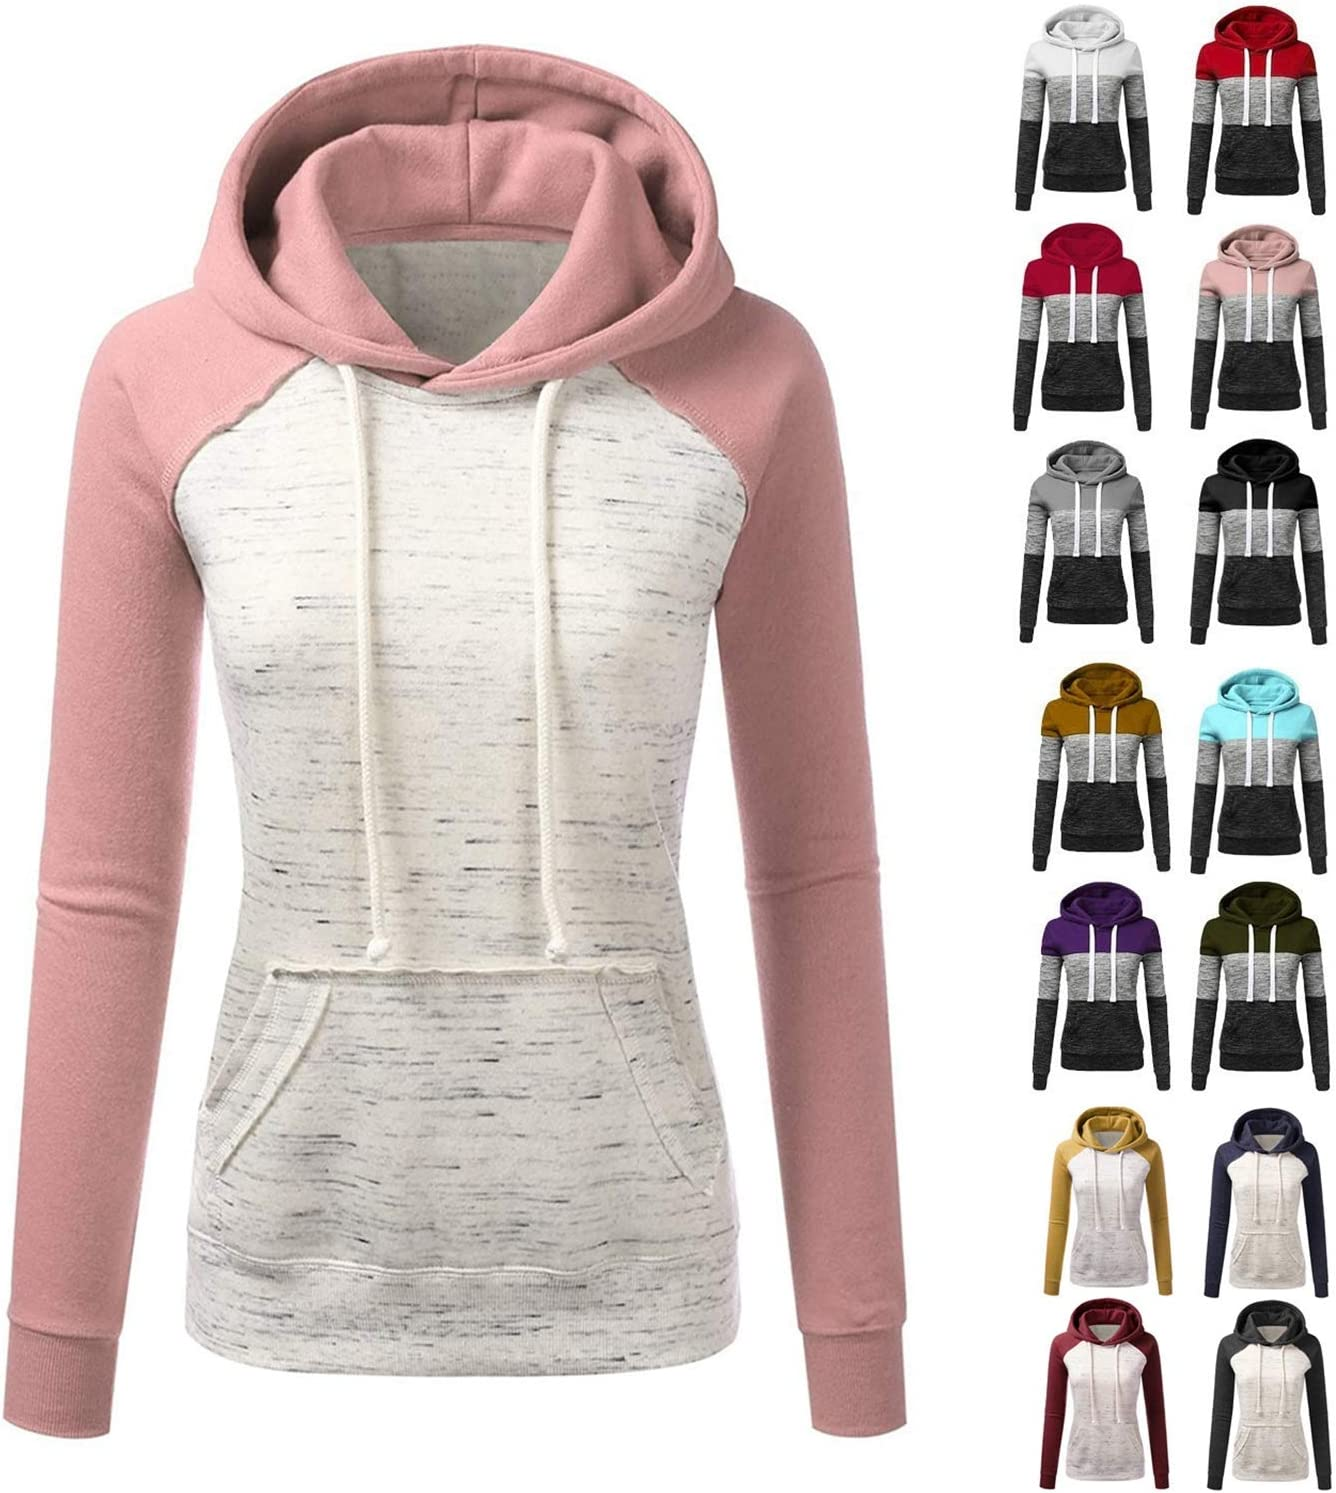 Uamaze 2020 Womens Colour Block Hoodies for Autumn Winter S to 3XL (15 Styles) WAS £24.97 NOW £9.99 w/code VY734D4R @ Amazon